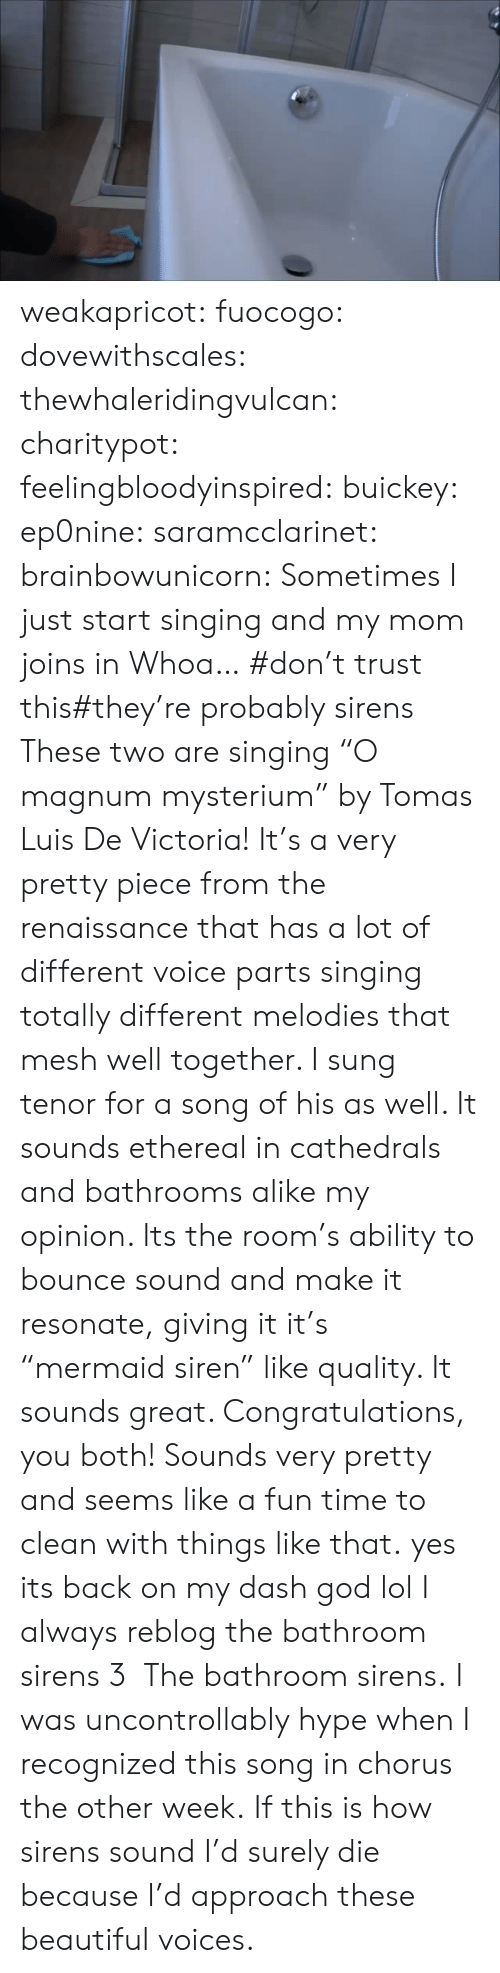 """tenor: weakapricot:  fuocogo:  dovewithscales:  thewhaleridingvulcan:  charitypot:  feelingbloodyinspired:  buickey:  ep0nine:  saramcclarinet:  brainbowunicorn:  Sometimes I just start singing and my mom joins in  Whoa…  #don't trust this#they're probably sirens  These two are singing """"O magnum mysterium"""" by Tomas Luis De Victoria! It's a very pretty piece from the renaissance that has a lot of different voice parts singing totally different melodies that mesh well together. I sung tenor for a song of his as well. It sounds ethereal in cathedrals and bathrooms alike my opinion. Its the room's ability to bounce  sound and make it resonate, giving it it's """"mermaid siren"""" like quality. It sounds great. Congratulations, you both! Sounds very pretty and seems like a fun time to clean with things like that.  yes its back on my dash  god lol  I always reblog the bathroom sirens 3  The bathroom sirens.   I was uncontrollably hype when I recognized this song in chorus the other week.   If this is how sirens sound I'd surely die because I'd approach these beautiful voices."""